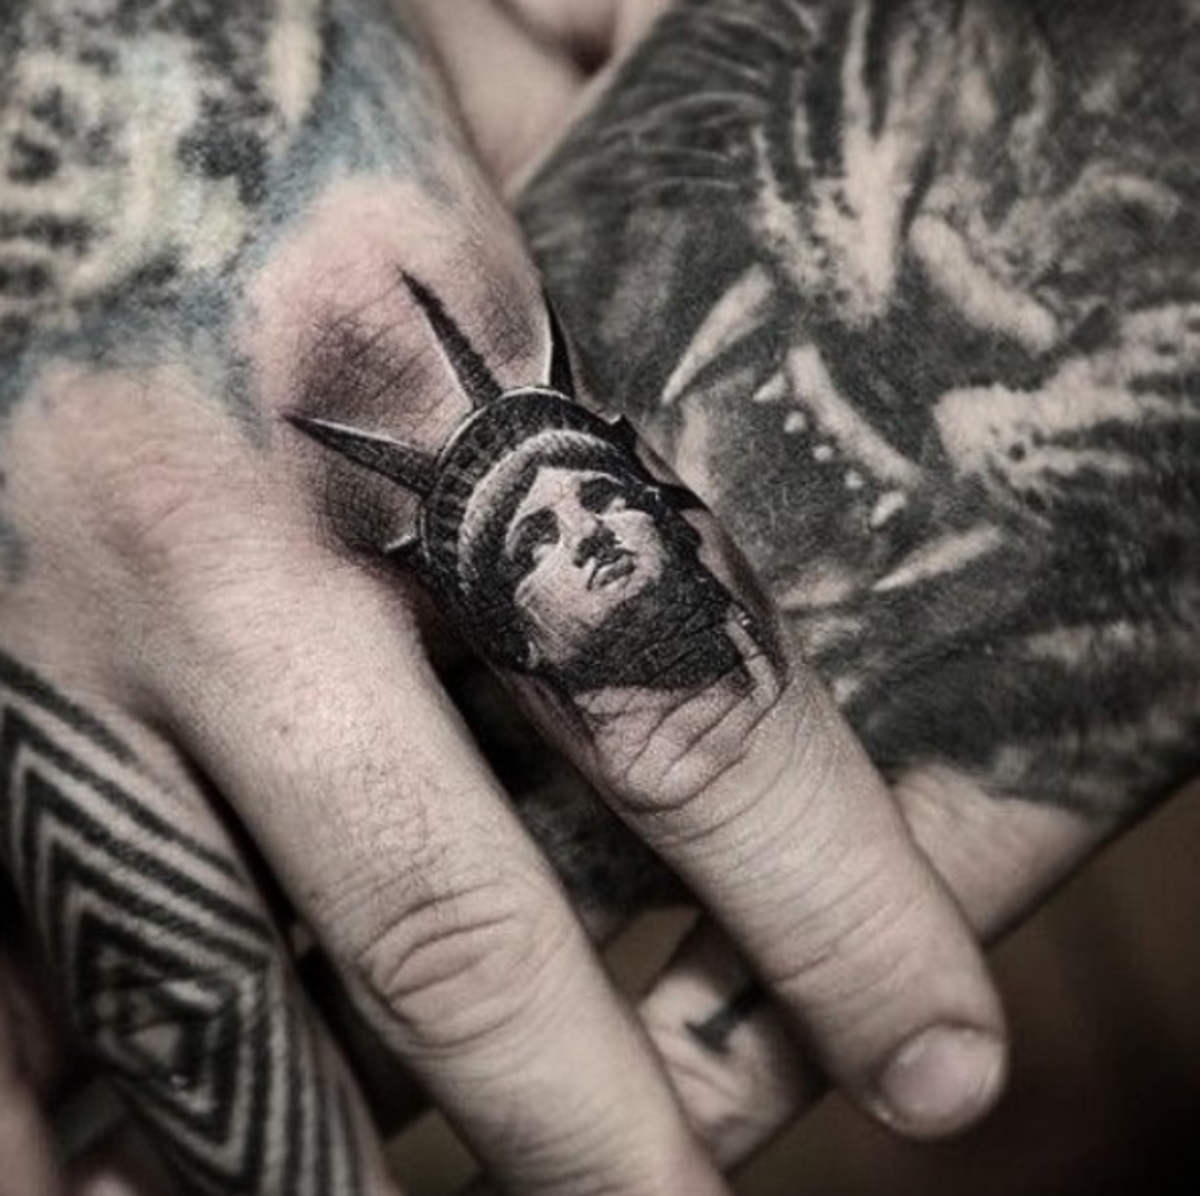 Statue-of-Liberty-finger-tattoo-Stefanos-Tattoos-Gallery-Pain-Magazine